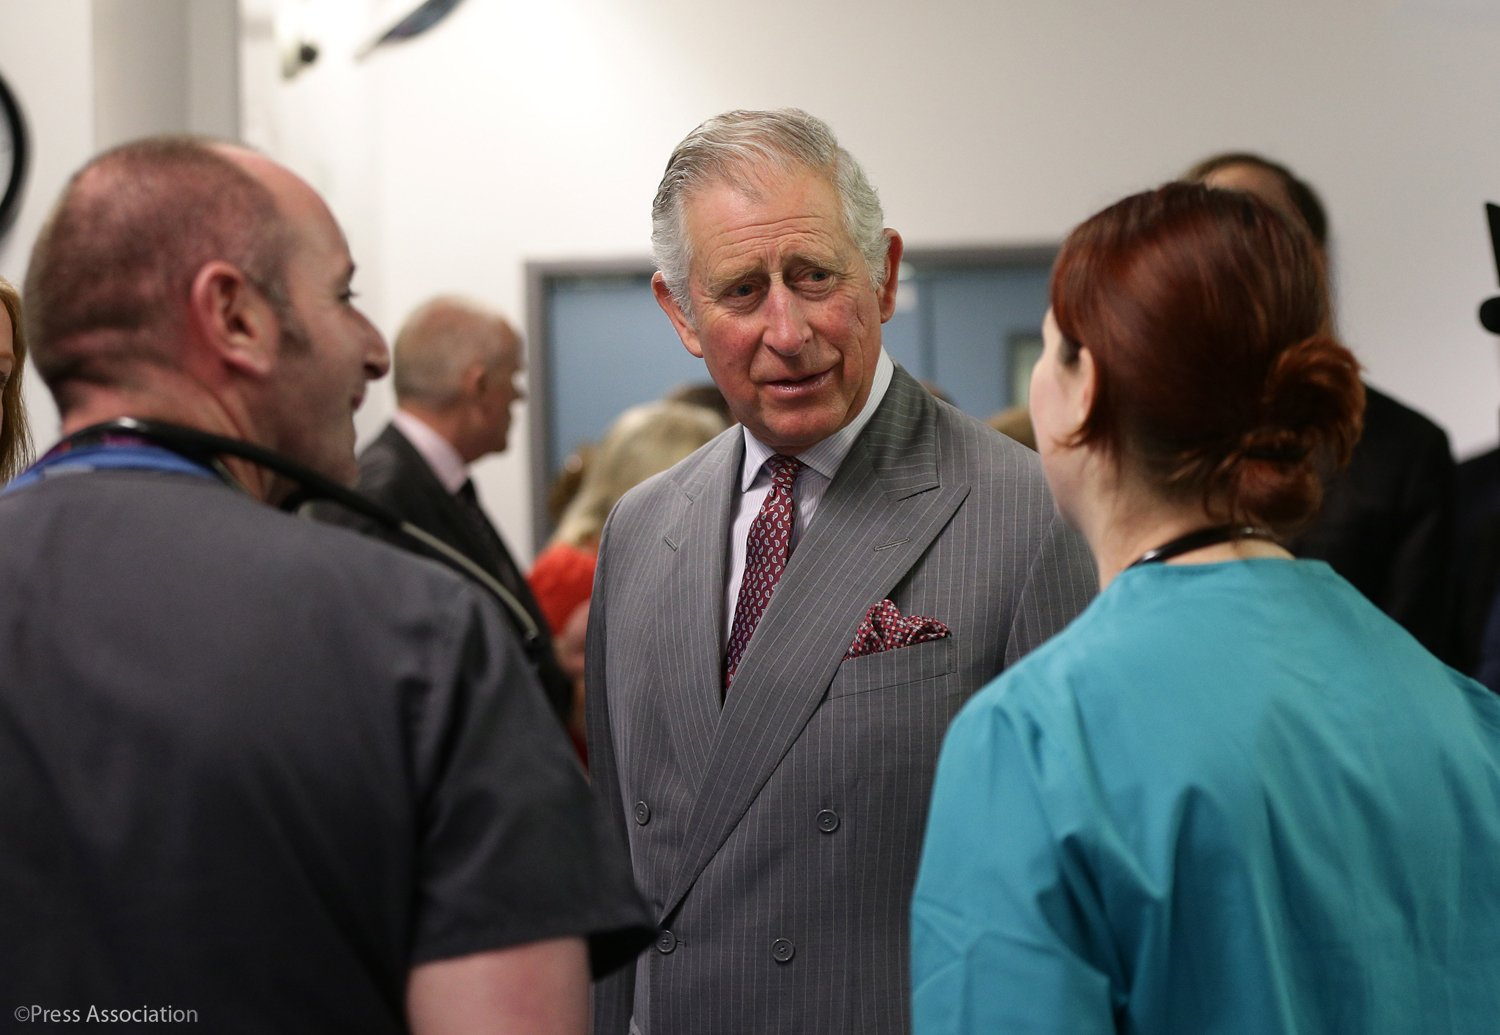 The Prince of Wales met victims of the London terrorist attack